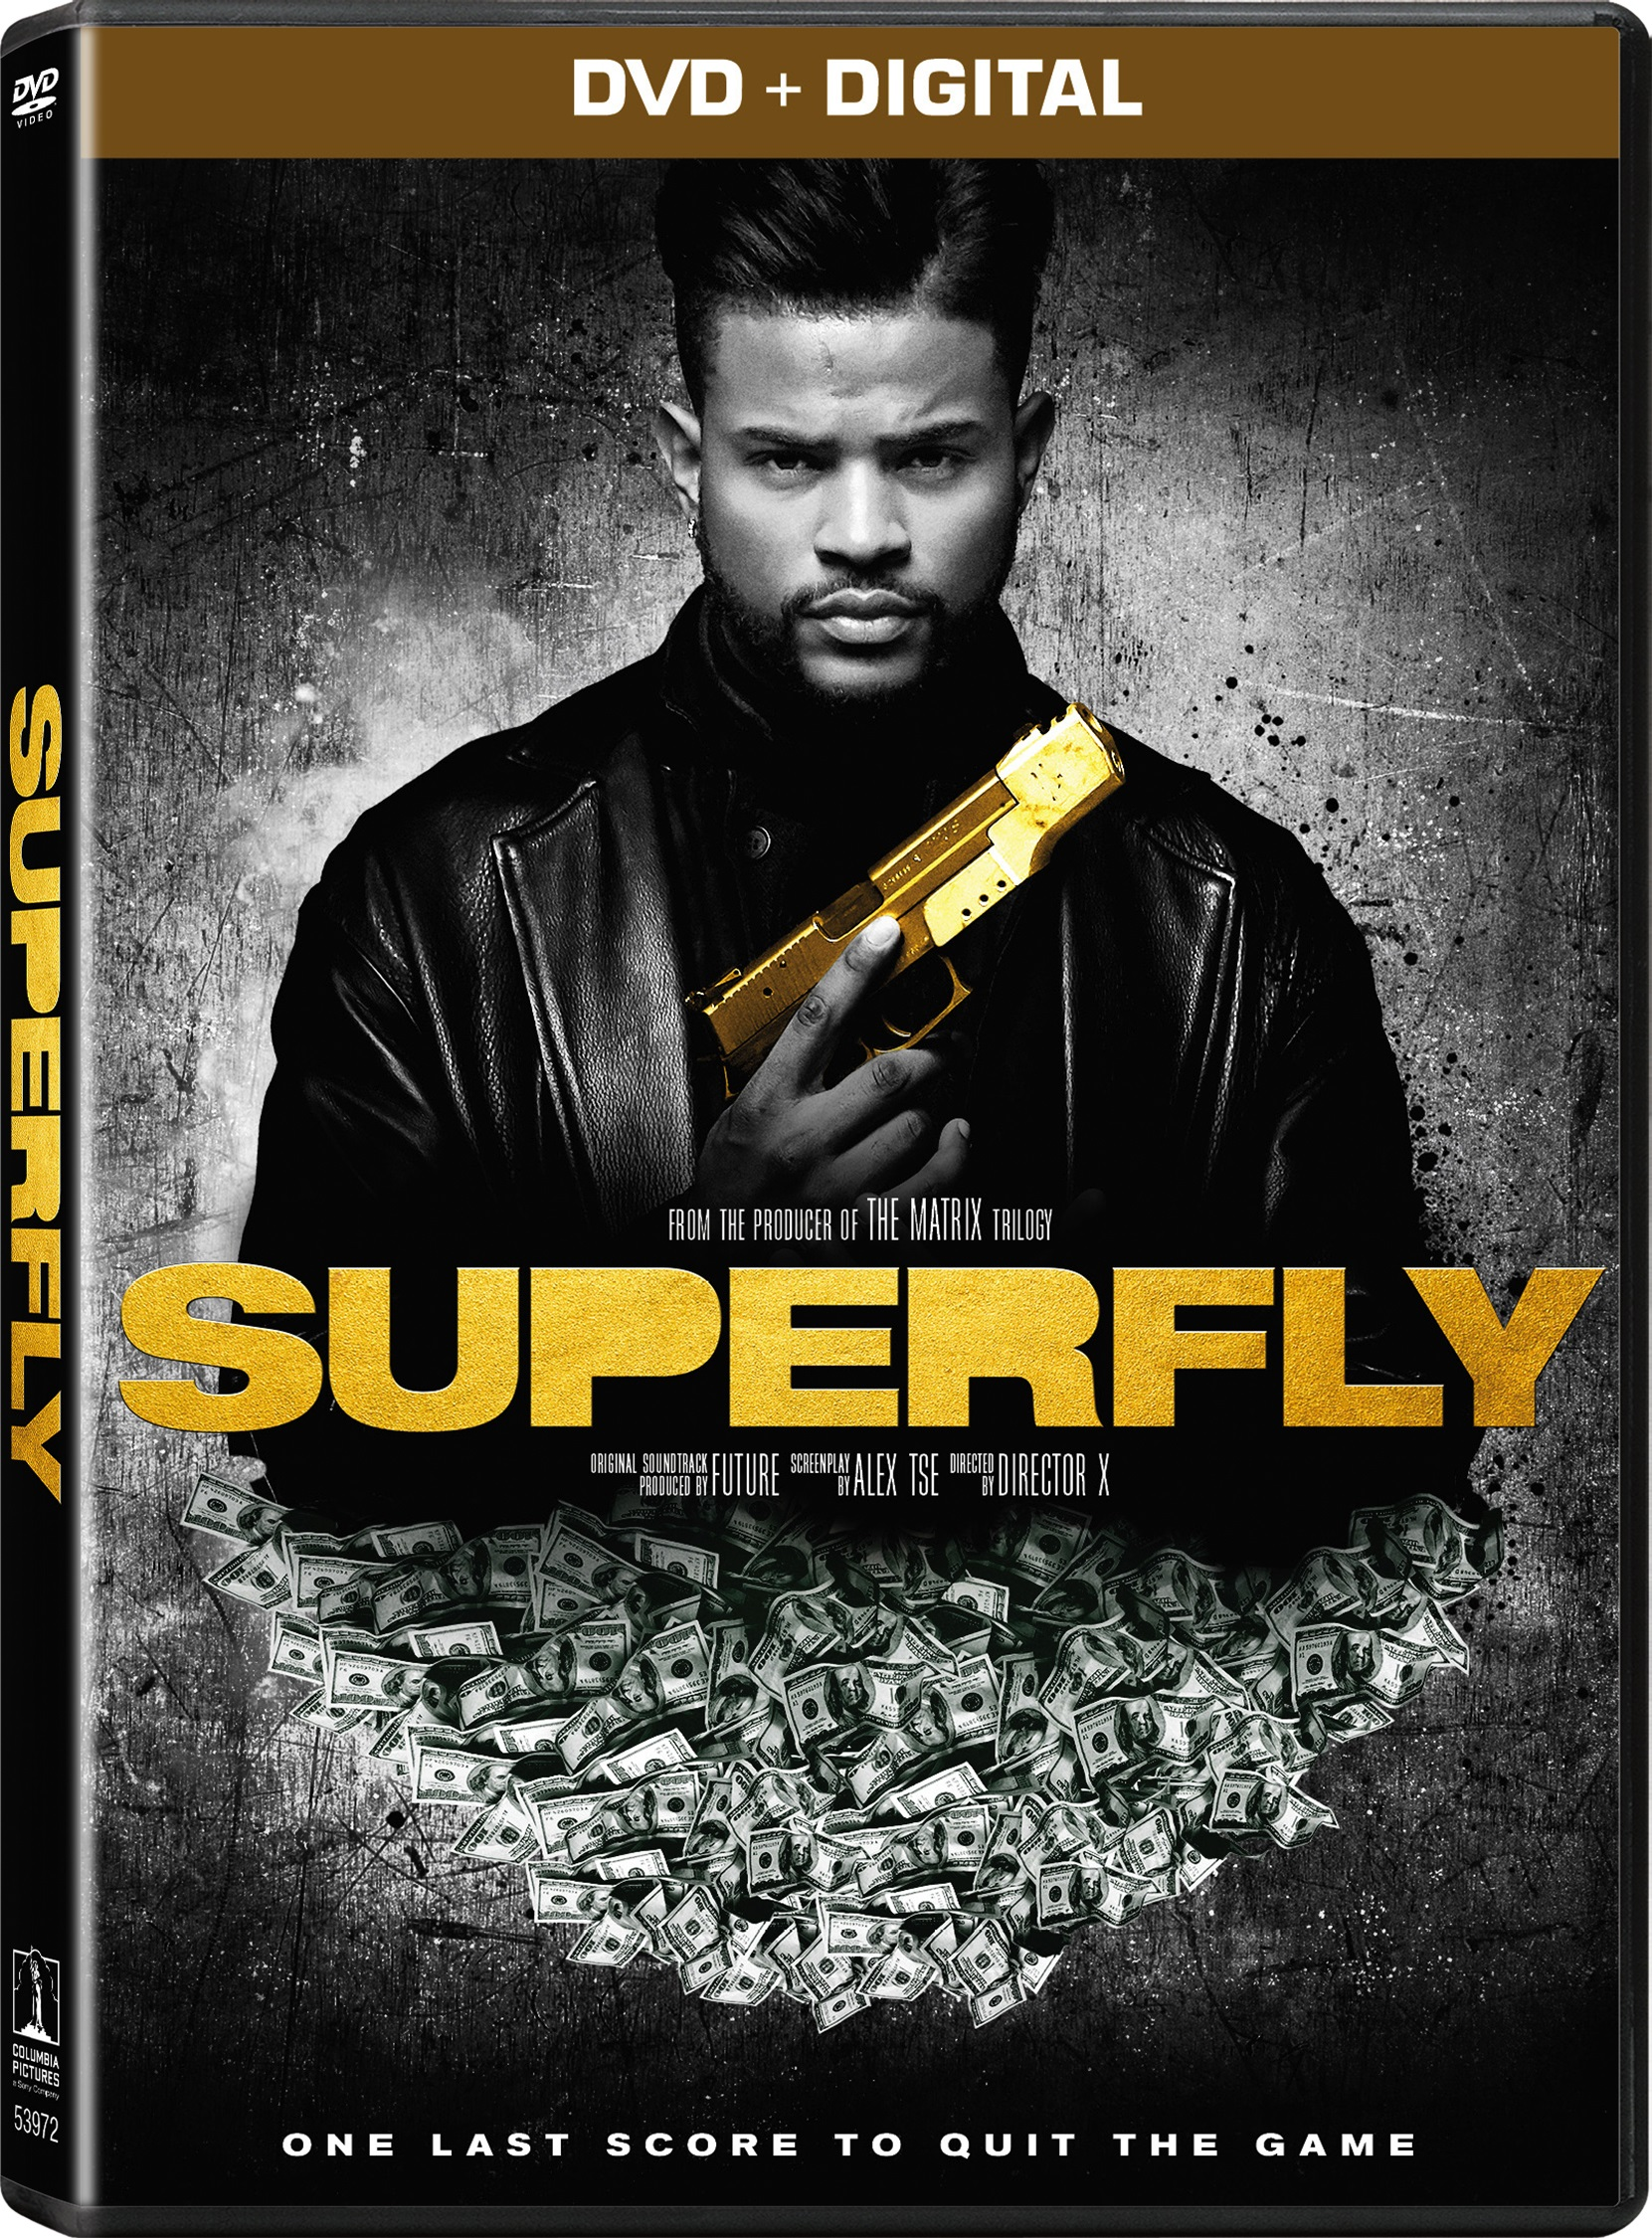 superfly 2018 dvd cover screen connections